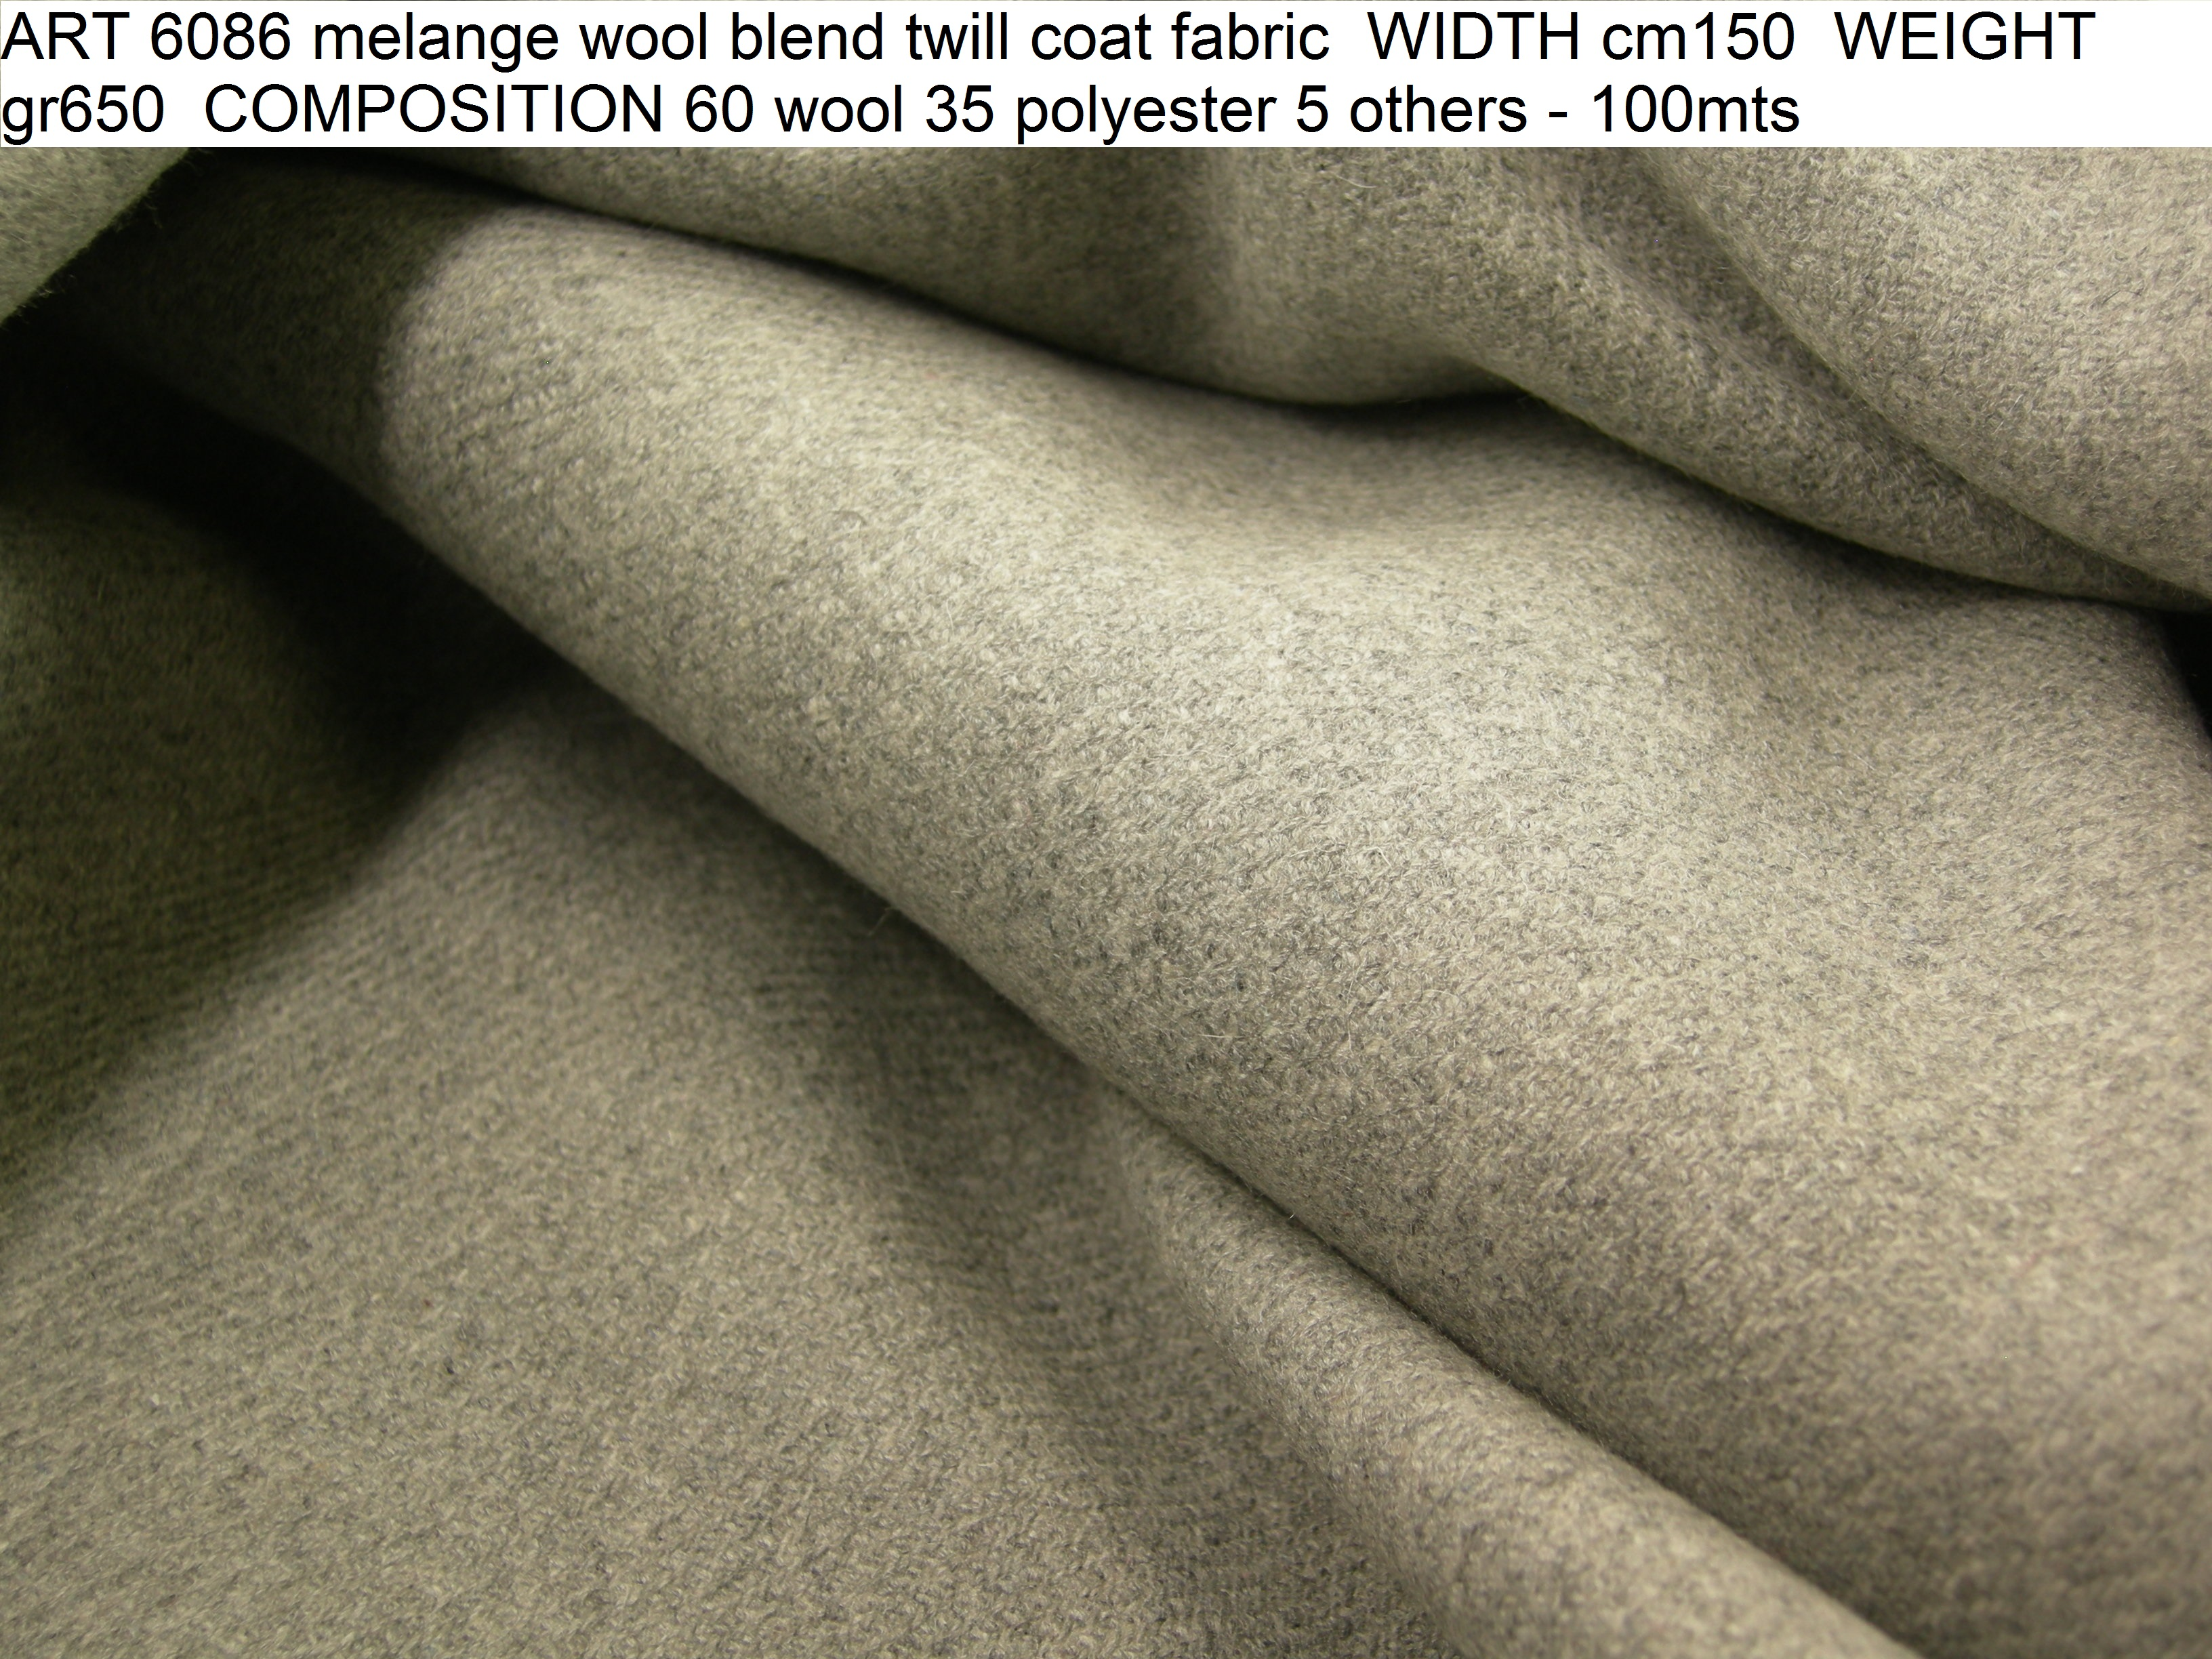 ART 6086 melange wool blend twill coat fabric WIDTH cm150 WEIGHT gr650 COMPOSITION 60 wool 35 polyester 5 others - 100mts